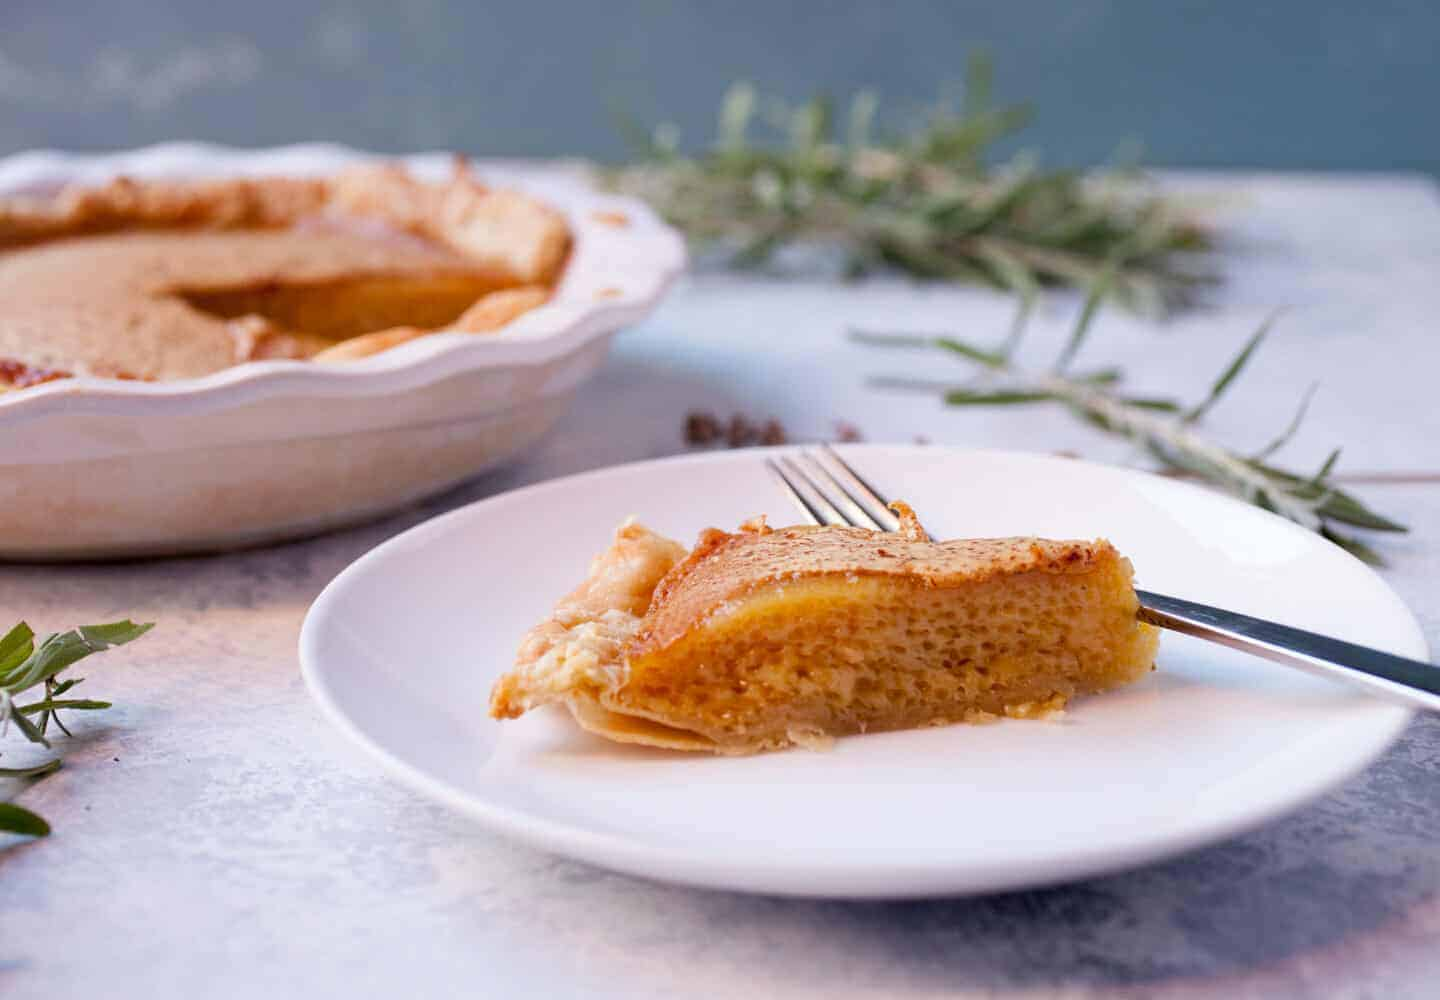 Lavender Honey Pie: This is a simple pie with just a few filling ingredients, but the flavors are deep and rich. It's a pie you might pass over on first glance, but will quickly become a favorite! | macheesmo.com